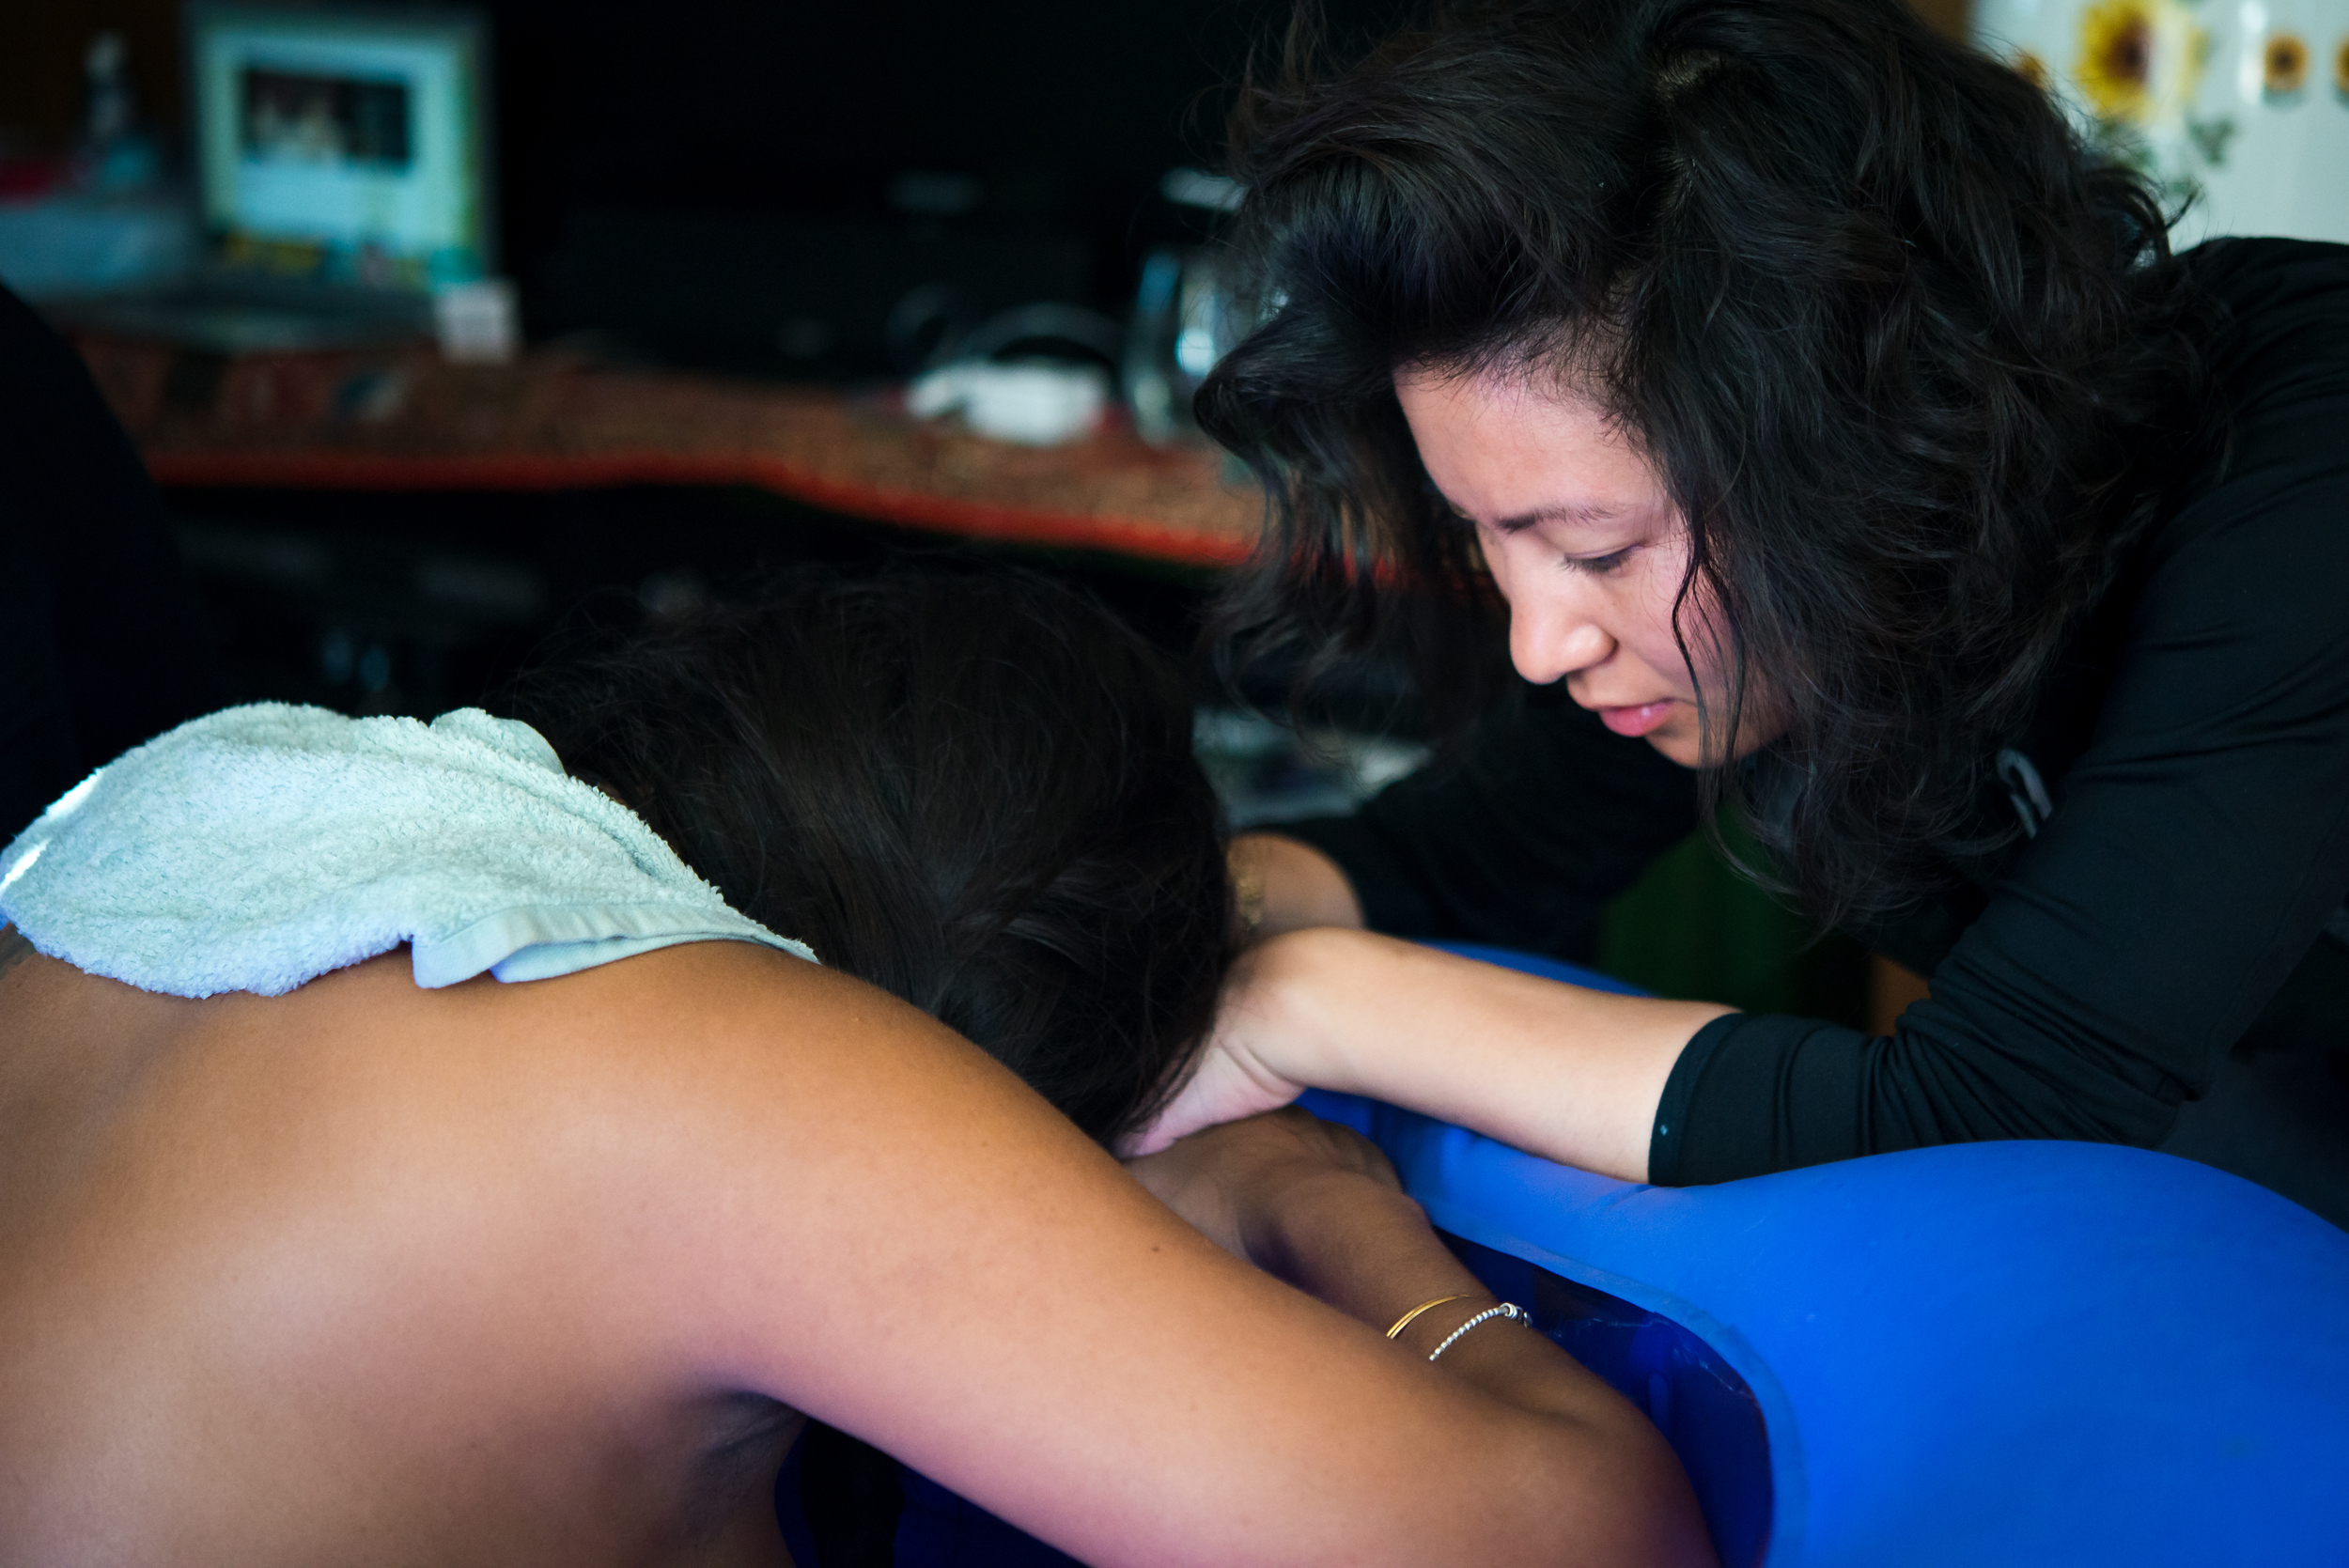 Doula Yien supports a mama having a natural delivery at home by keeping her calm, focused, and on top of her contractions. Yien provides continuous physical and emotional support until the baby is born, never leaving the mom's side.  Photo by Pam Ellis